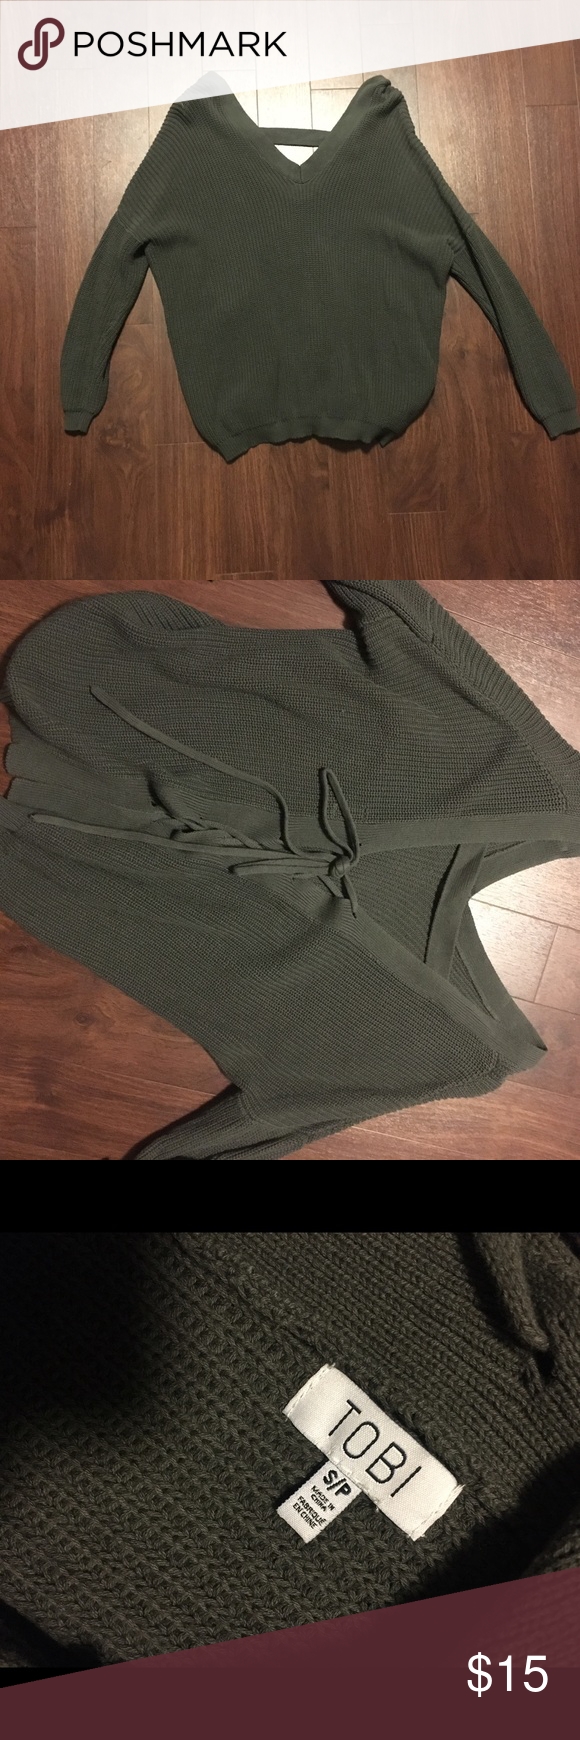 Lace up back green Tobi sweater Forrest green Tobi sweater, super comfortable, open back with lace up on bottom, loose fitting, good condition, use offer button to negotiate and comment with any questions! Tobi Sweaters V-Necks